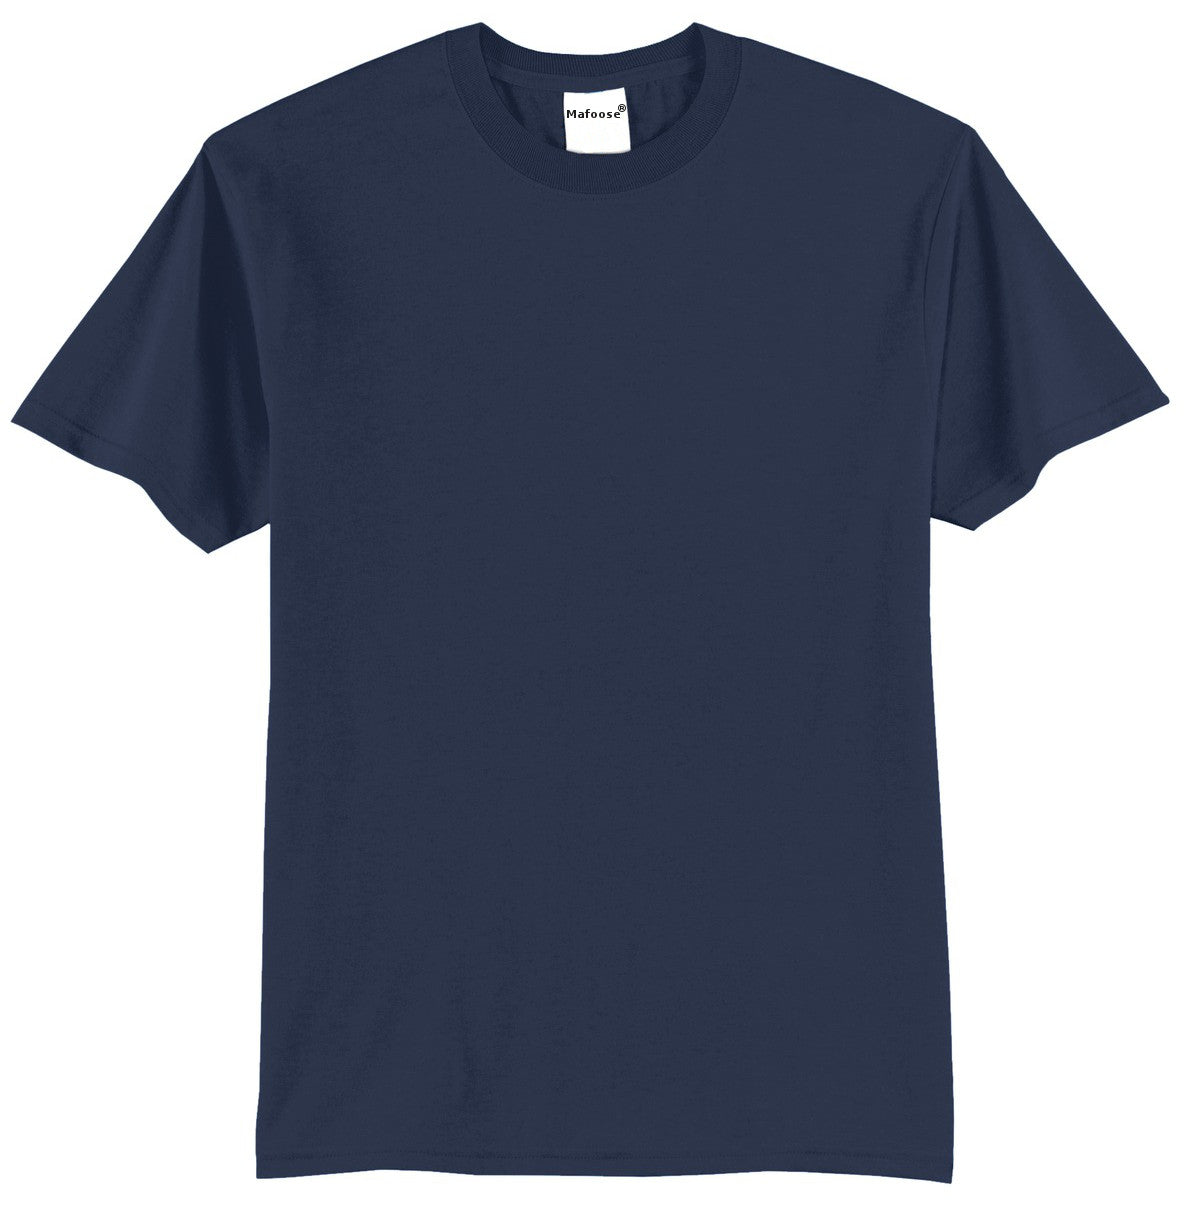 Mafoose Men's Core Blend Tee Shirt Navy